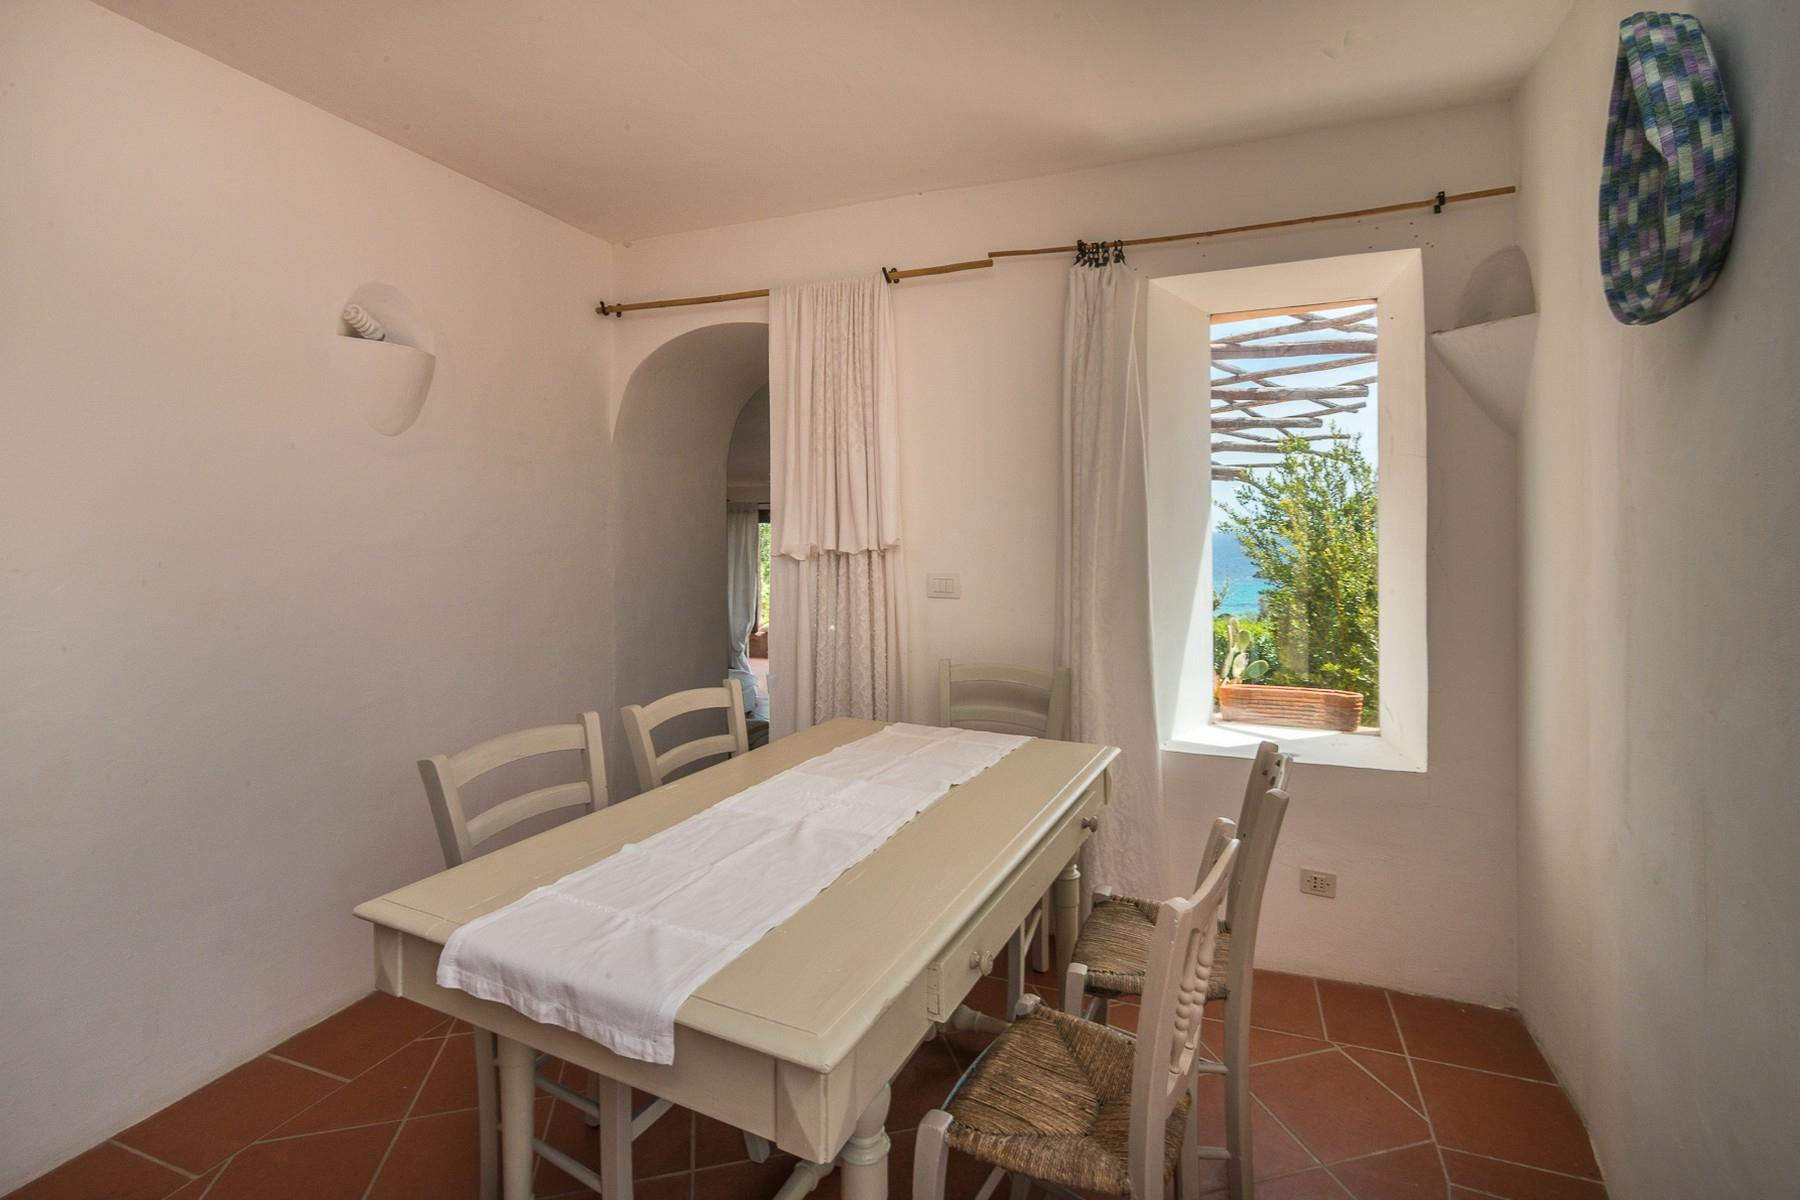 Porto Cervo Cala Granu Delightful Apartment a few steps from the beach - 10